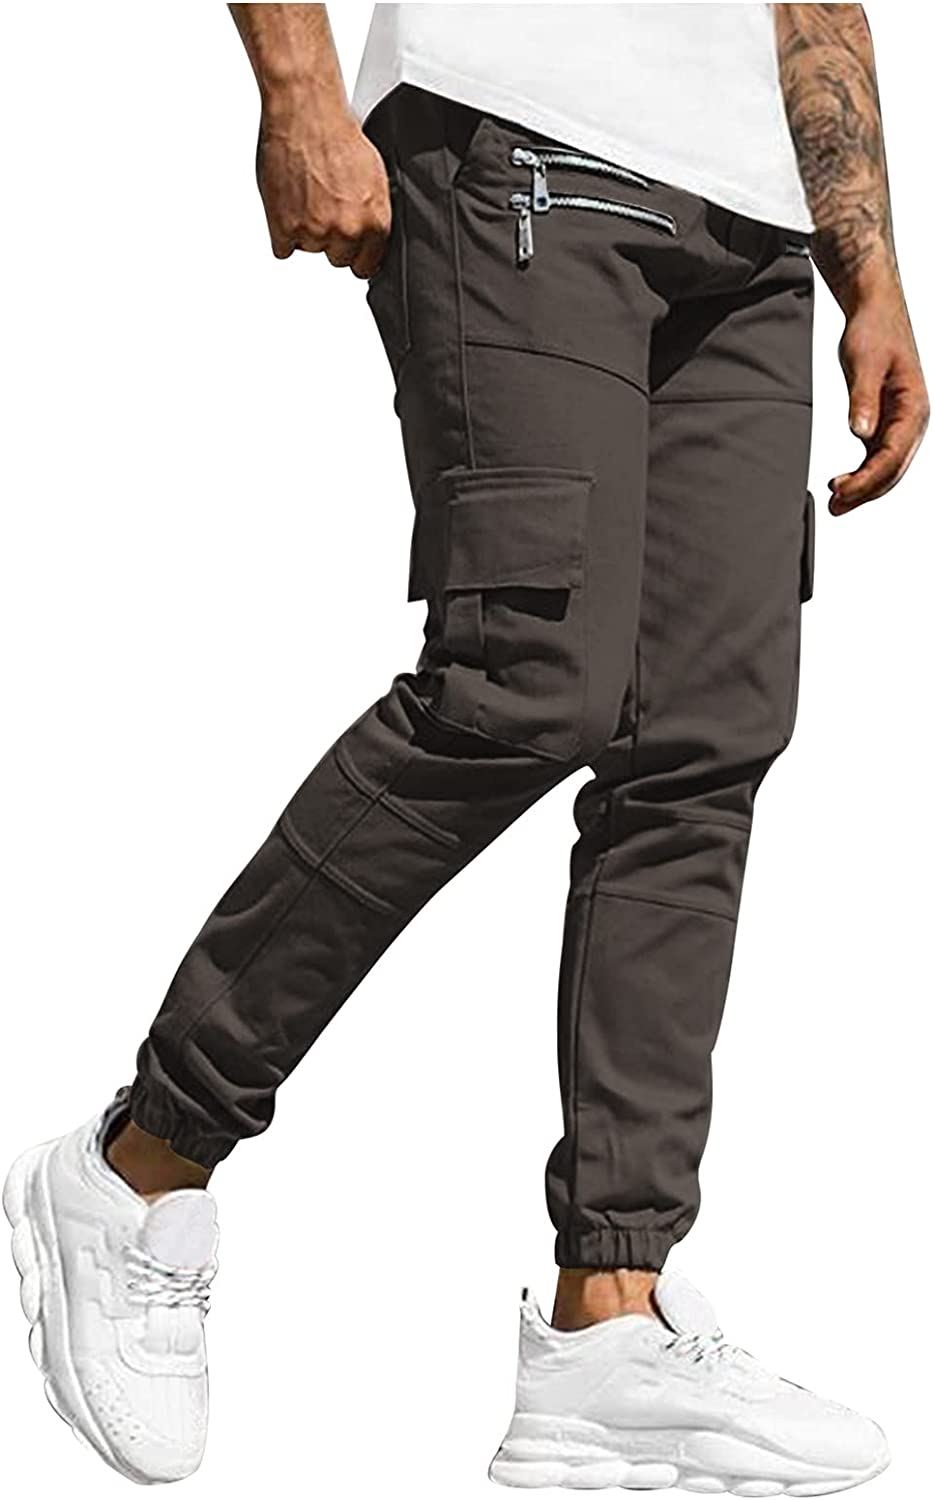 Beshion Mens Joggers Sweatpants with Zipper Pockets Slim Fit Casual Athletic Long Pant Tactical Pants Outdoor Trousers